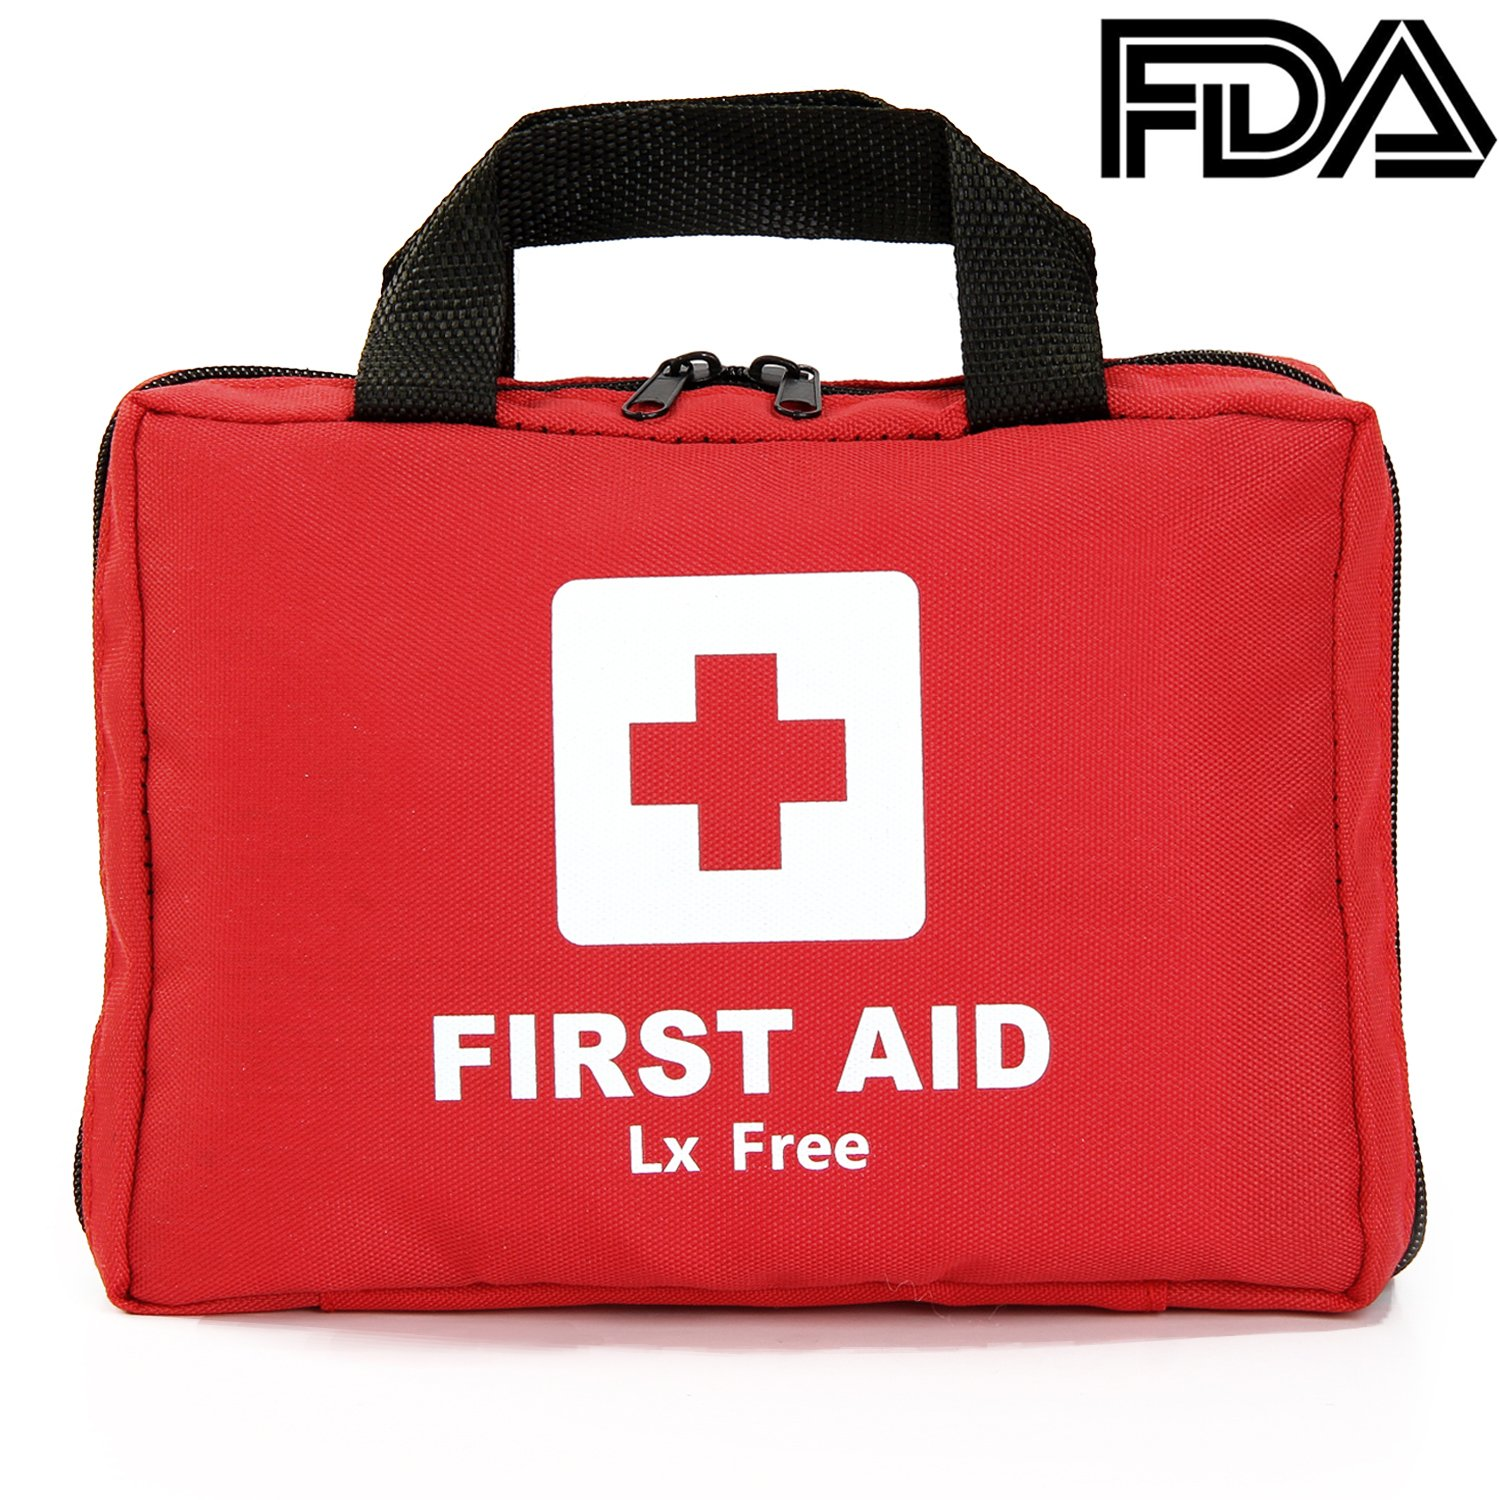 Lx Free First Aid Kit 297 Piece Compact for Medical Emergency for Home, Car, Camping, Hiking, Sports, Work, Office, Survival and Traveling - Big Quantity First Aid Products